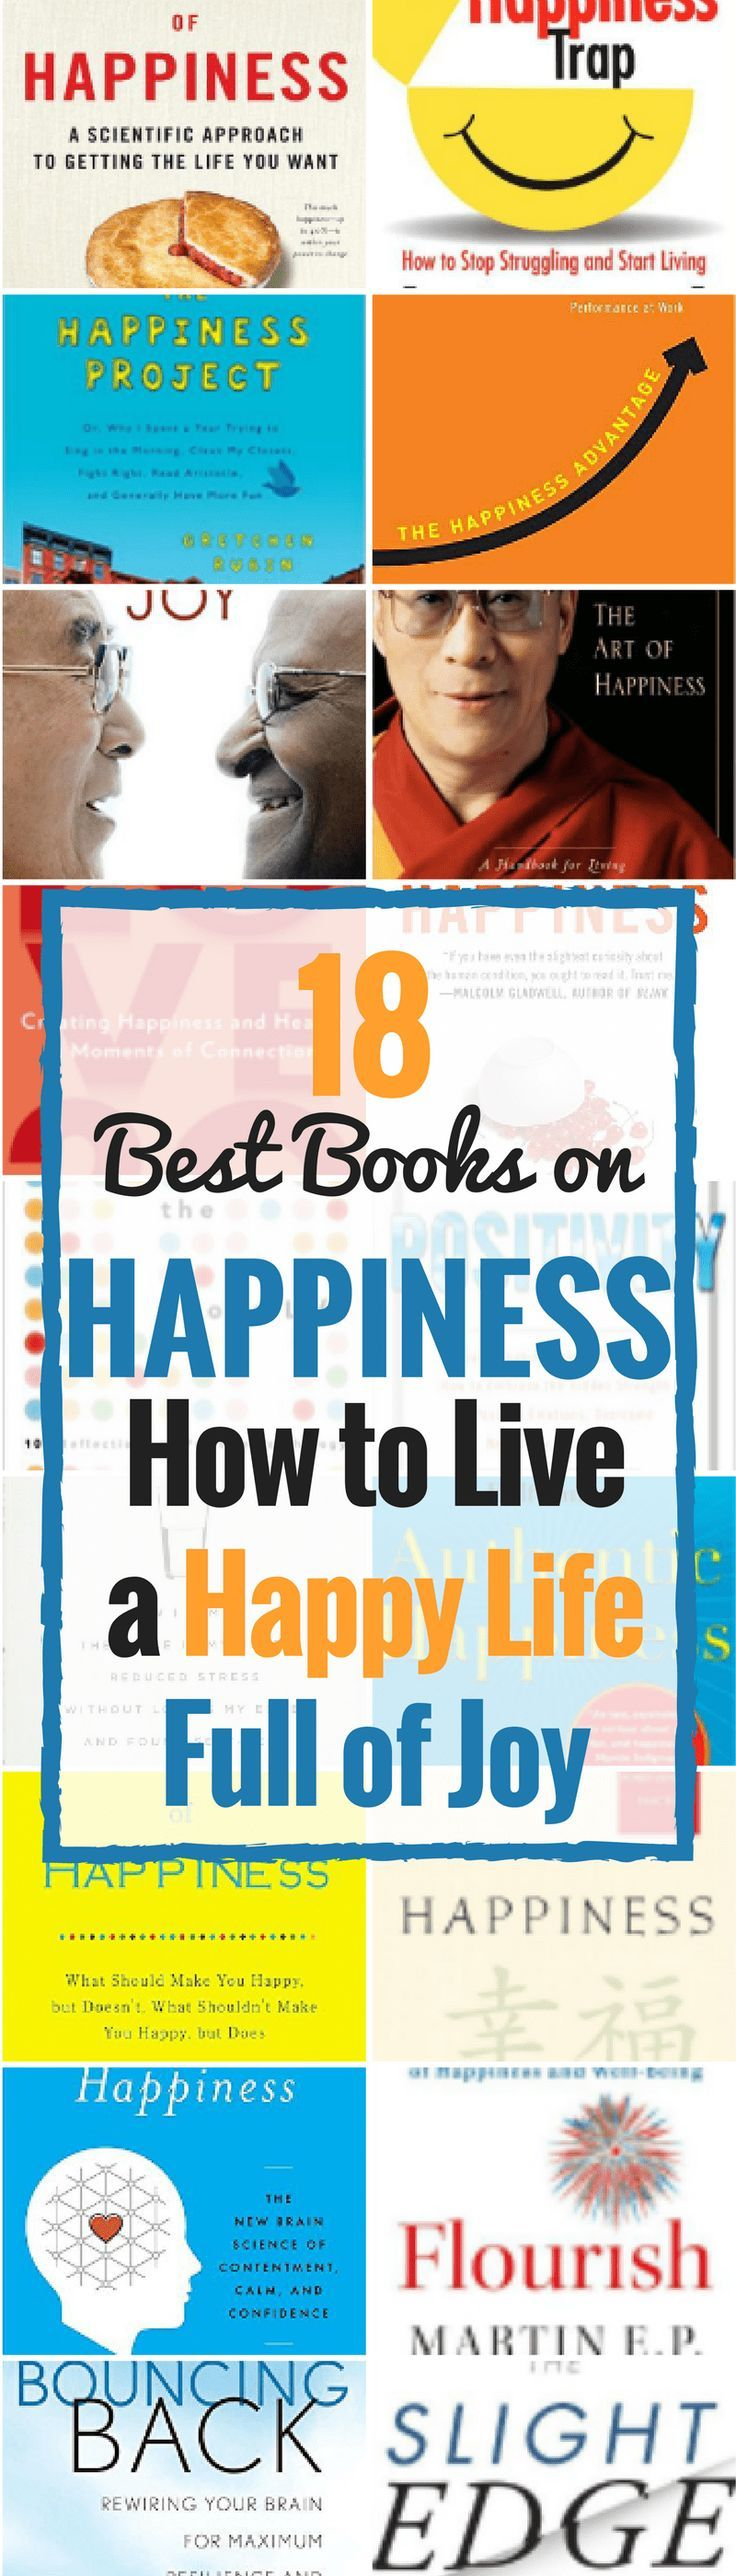 happiness books -yHow to Live a Happy Life Full of Joy | Books about happiness | Self help books | self improvement books #happiness #books #book #joy #mustread #wellness #healthyliving #healthylifestyle #happy #reading #Nonfiction #selfimprovement #selfcare